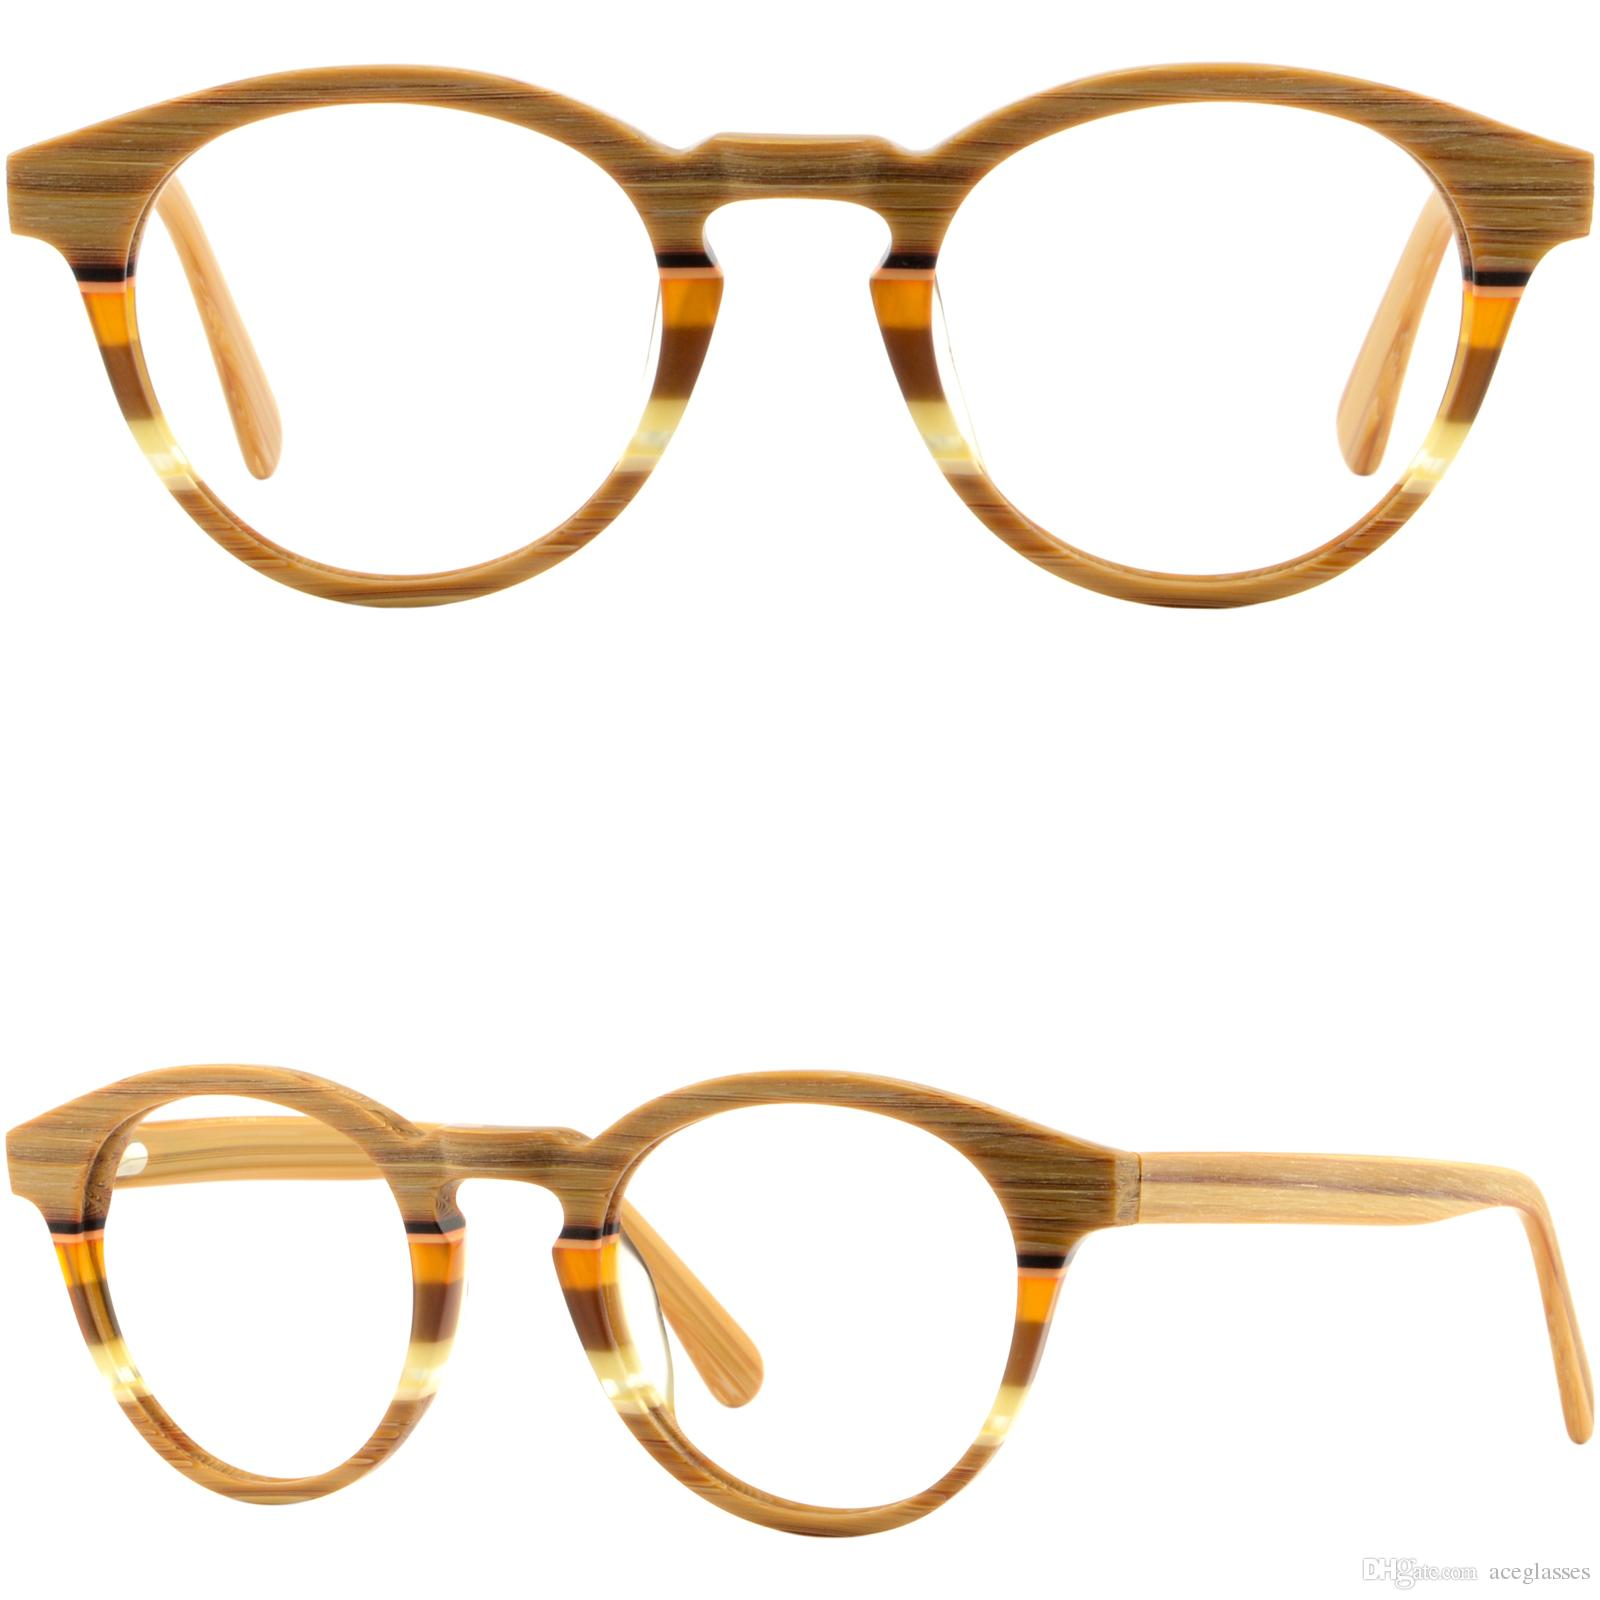 cdd030f9798 Retro Vintage Round Acetate Frames Plastic Eyeglasses Faux Wood Texture Glasses  Frames For Eyeglasses Glasses Frame Repair From Aceglasses